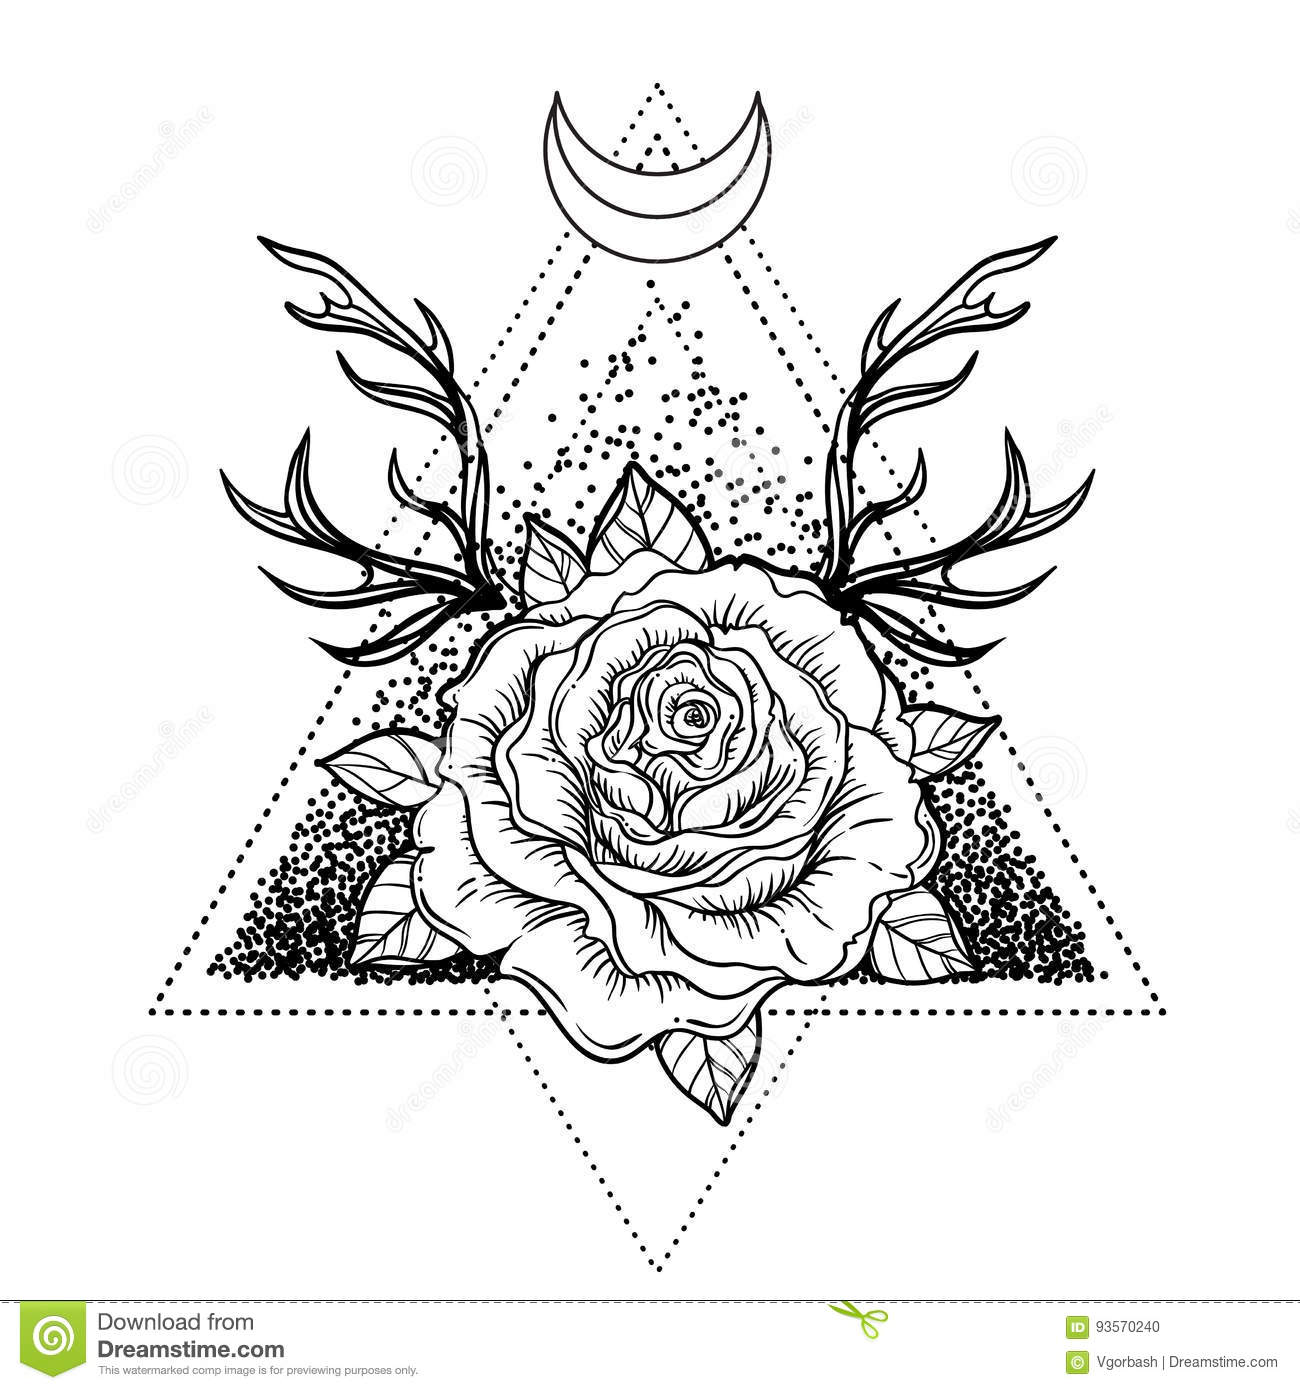 Eye In A Rose Tattoo: All Seeing Eye Symbol Over Rose Flower And Deer Antlers